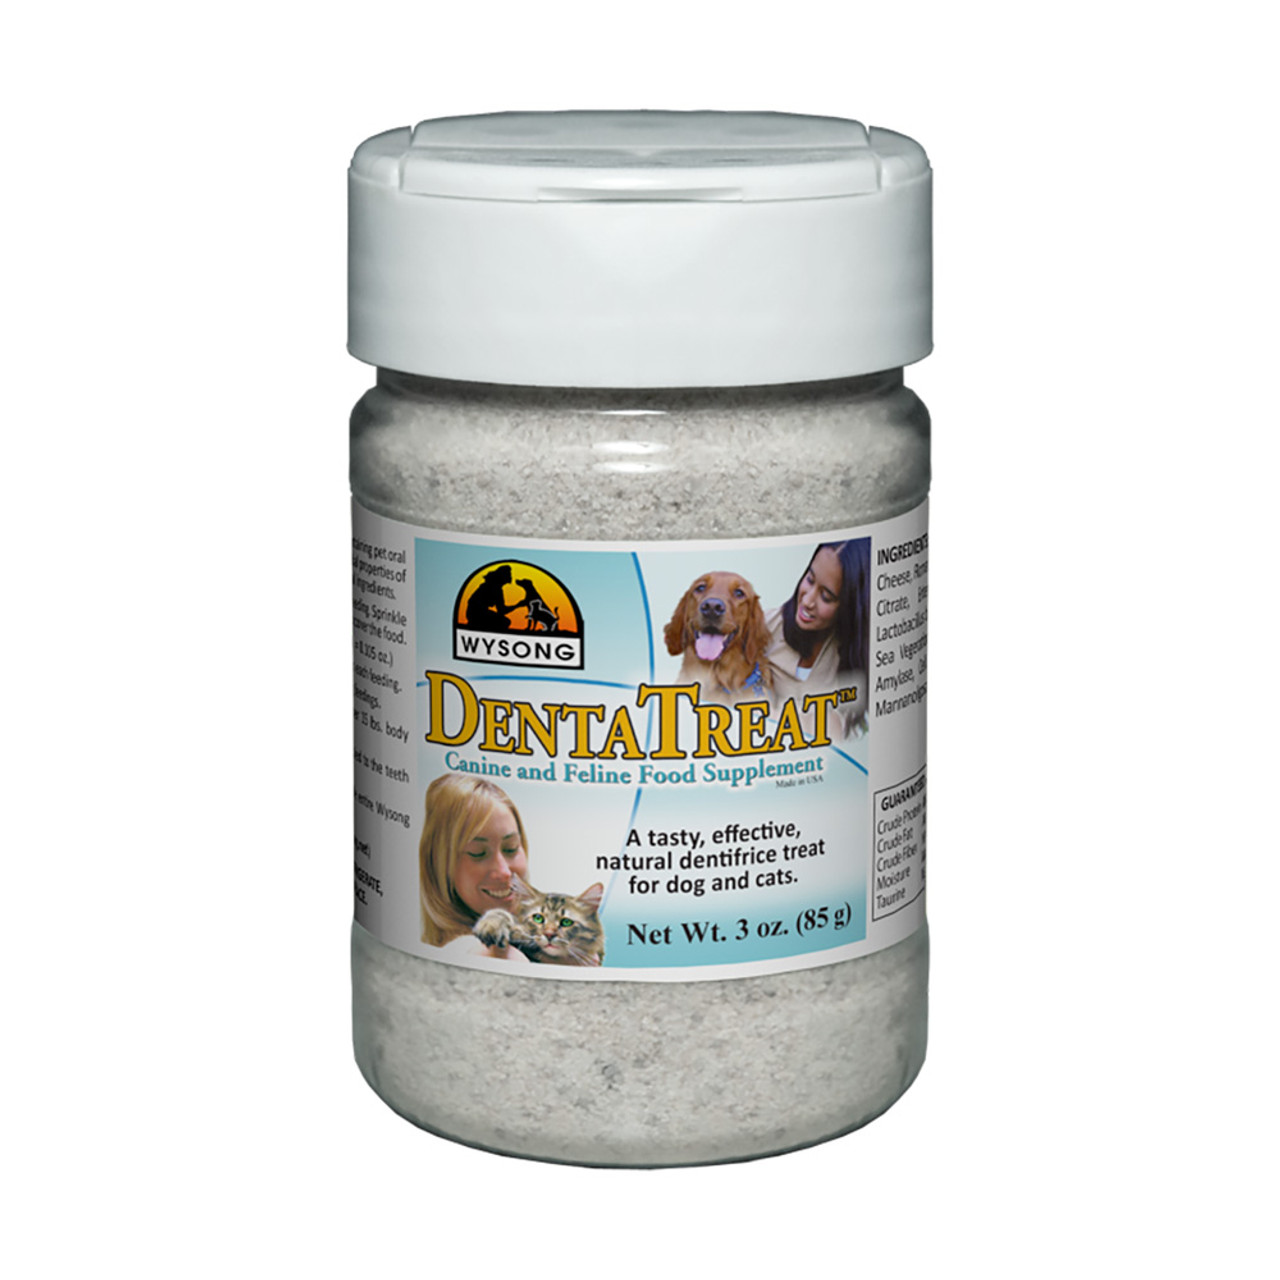 Wysong DentaTreat Canine and Feline Food Supplement